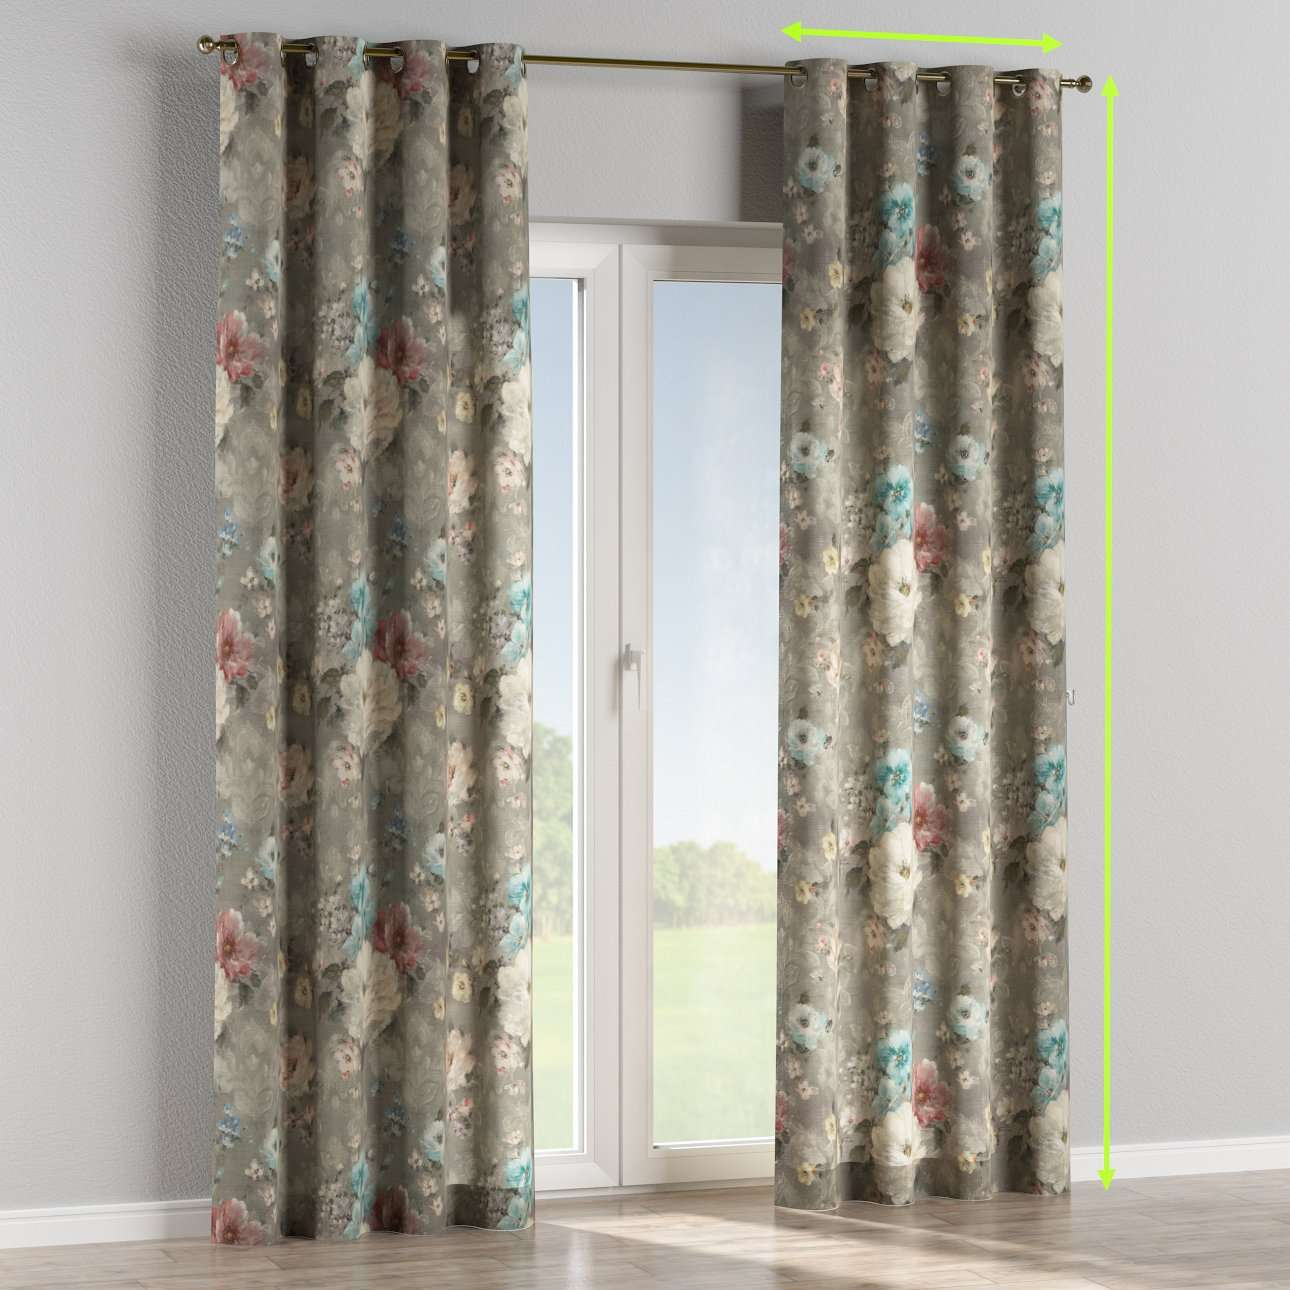 Eyelet curtains in collection Monet, fabric: 137-81